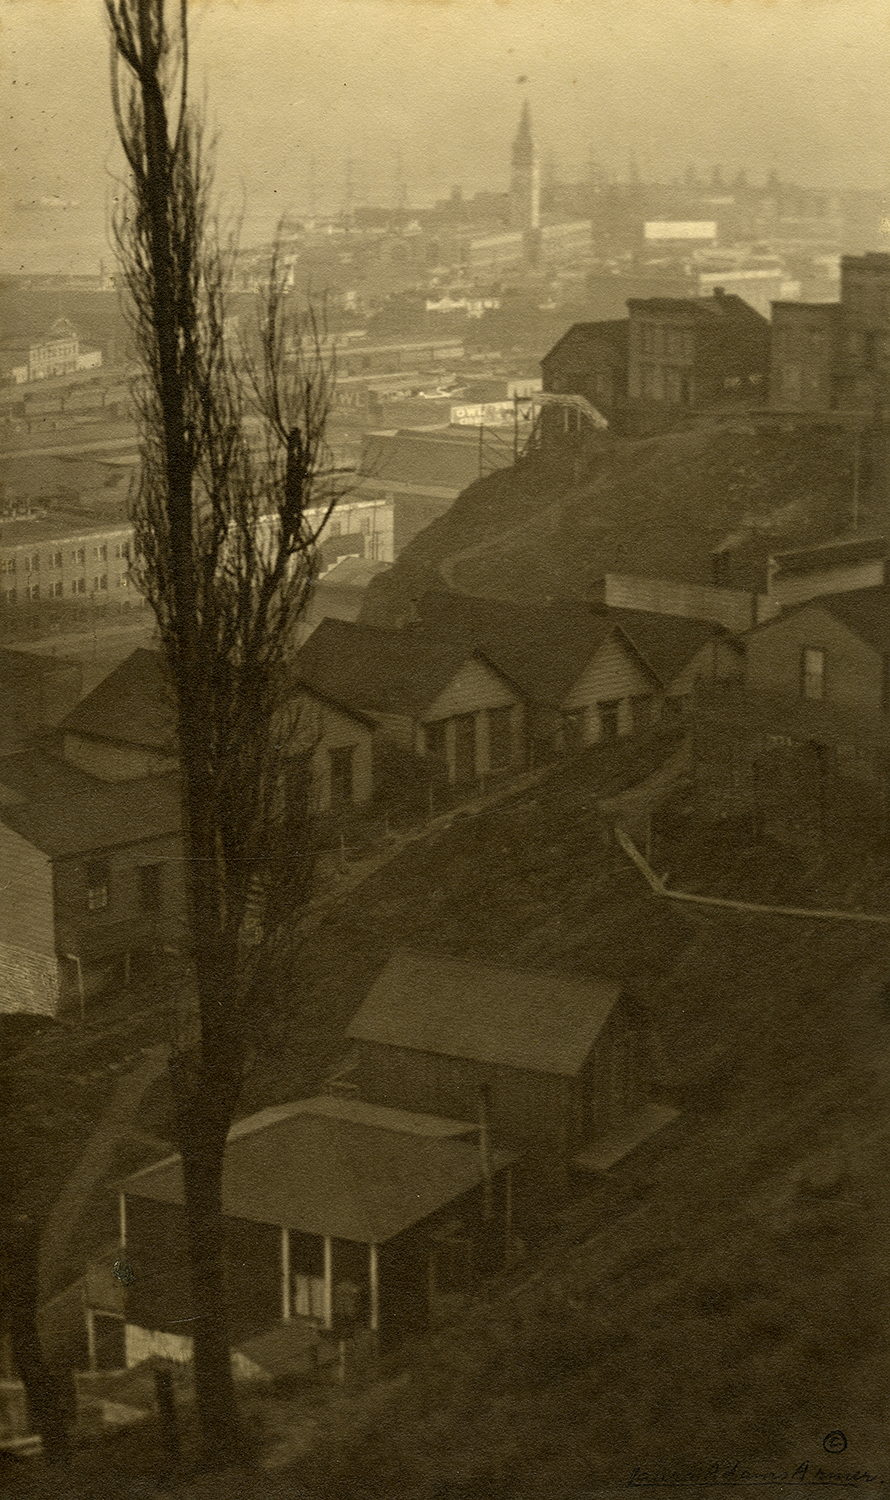 Telegraph Hill photographed by Laura Adams Armer around 1910. Courtesy the California Historical Society.